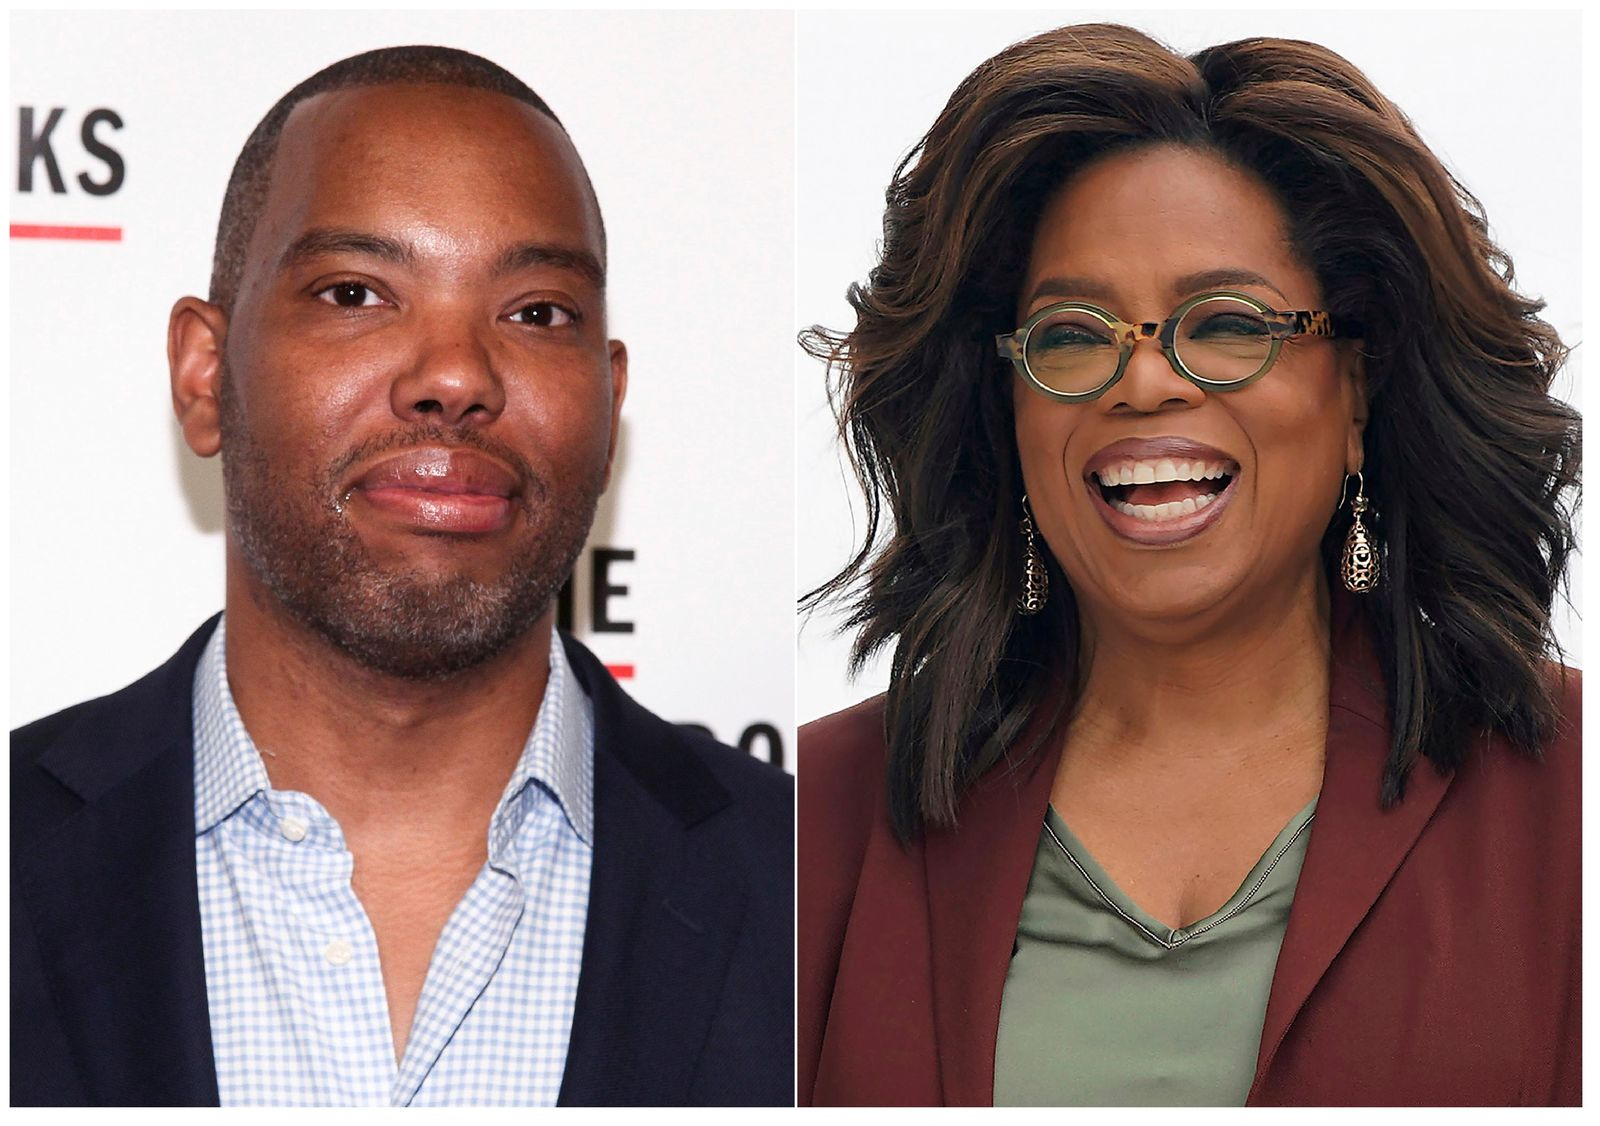 This combination photo shows author Ta-Nehisi Coates at the The Gordon Parks Foundation Annual Awards Gala in New York on May 22, 2018, left, and Oprah Winfrey at an event to announce new Apple products in Cupertino, Calif. on March 25, 2019.{ } (AP Photo)